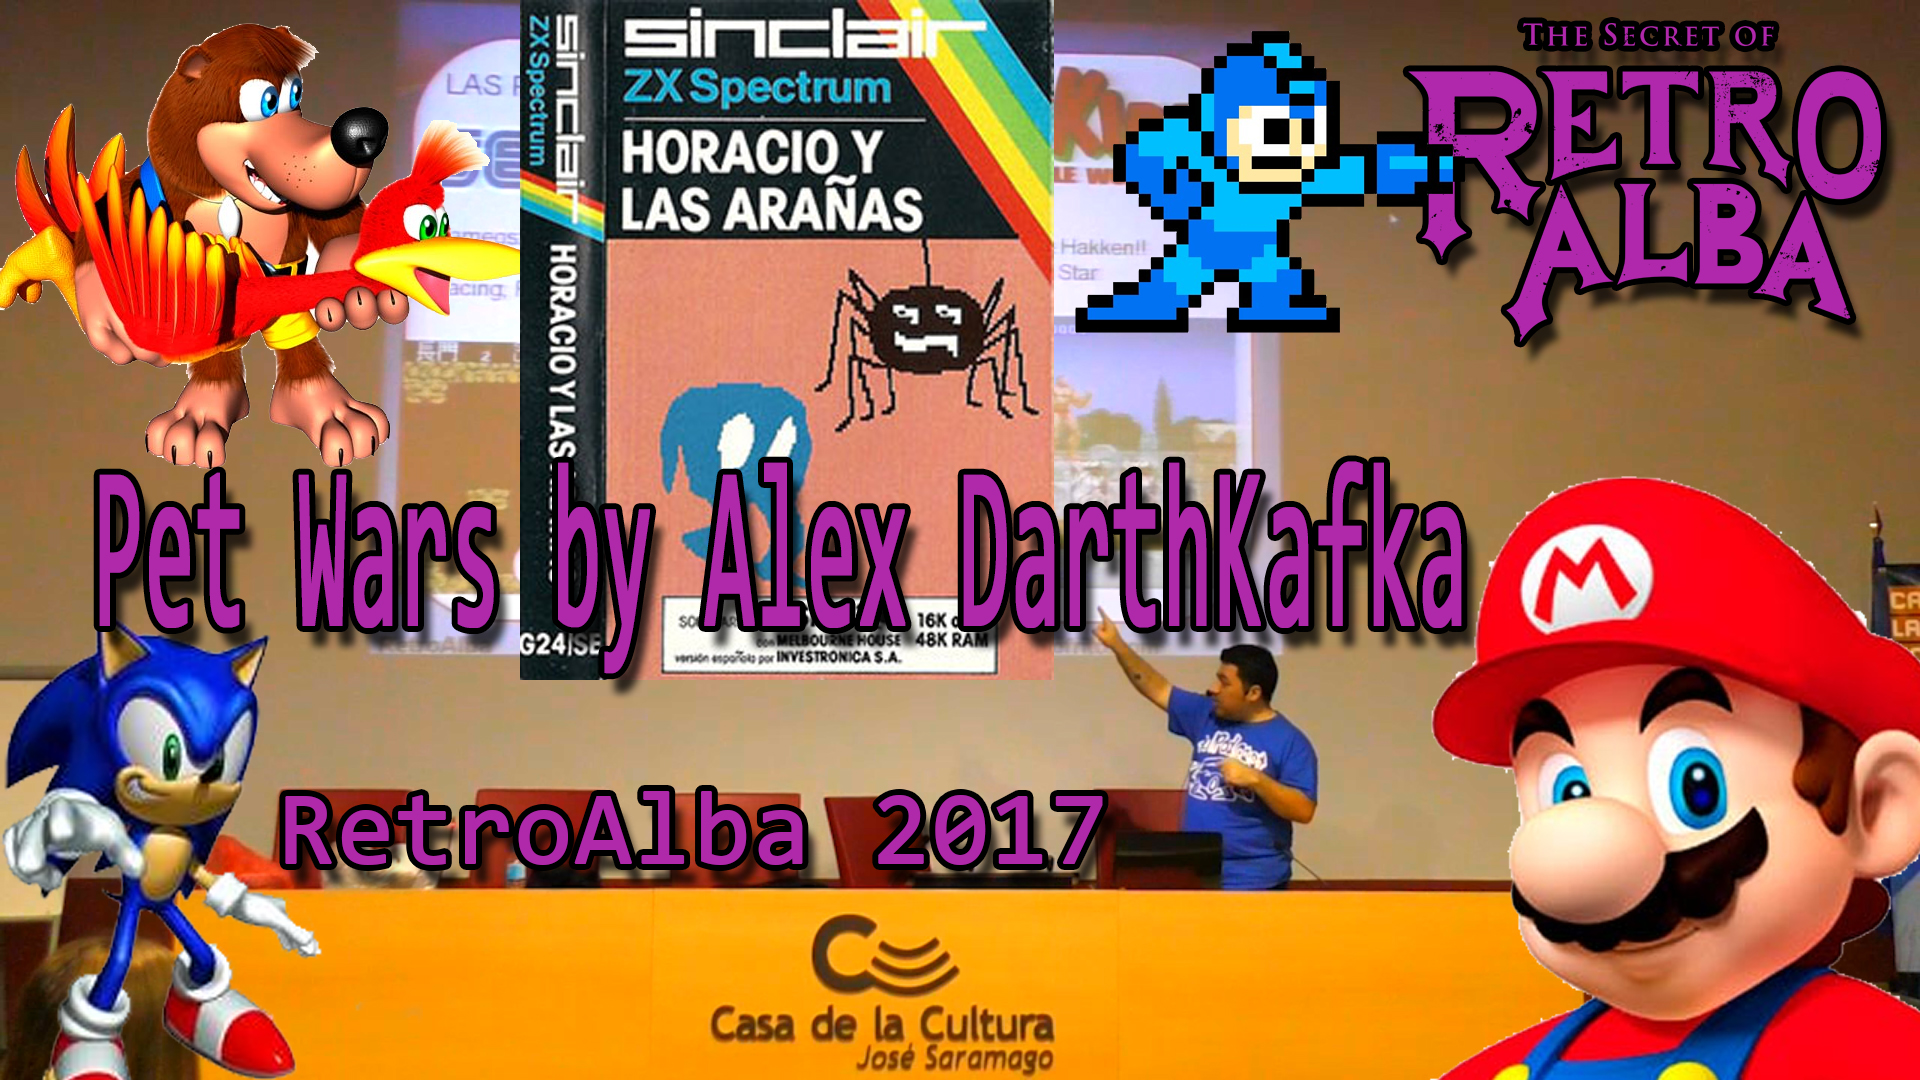 RetroAlba 2017 Charla Pet Wars by Alex DarthKafka